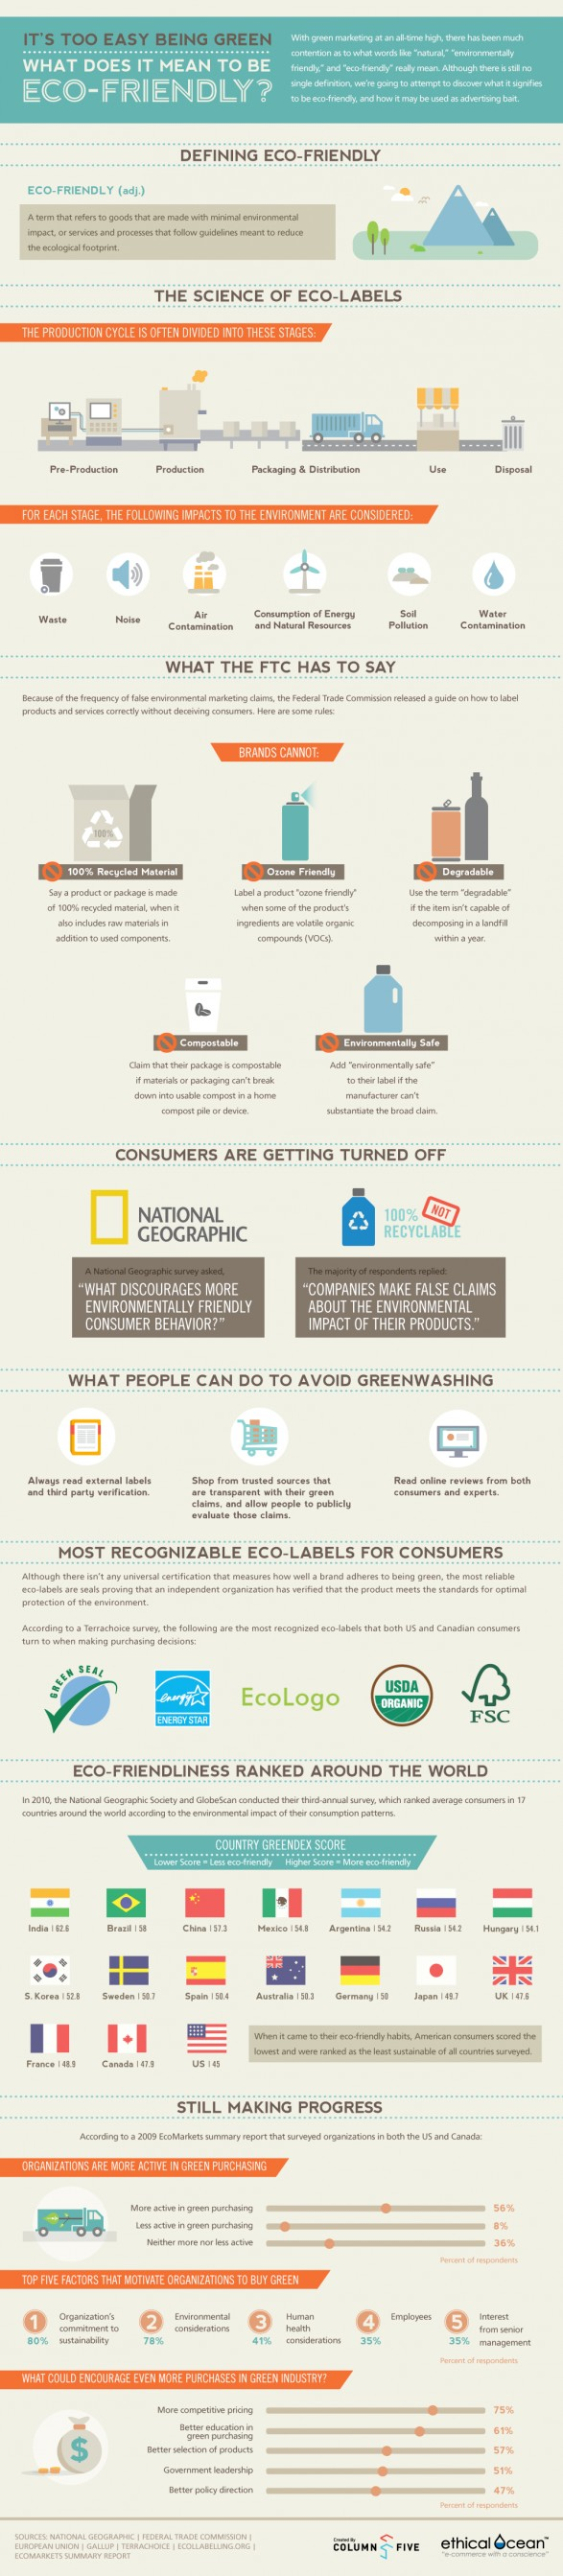 Eco Friendly Infographic Infographic  Submit Promote amp Share ...